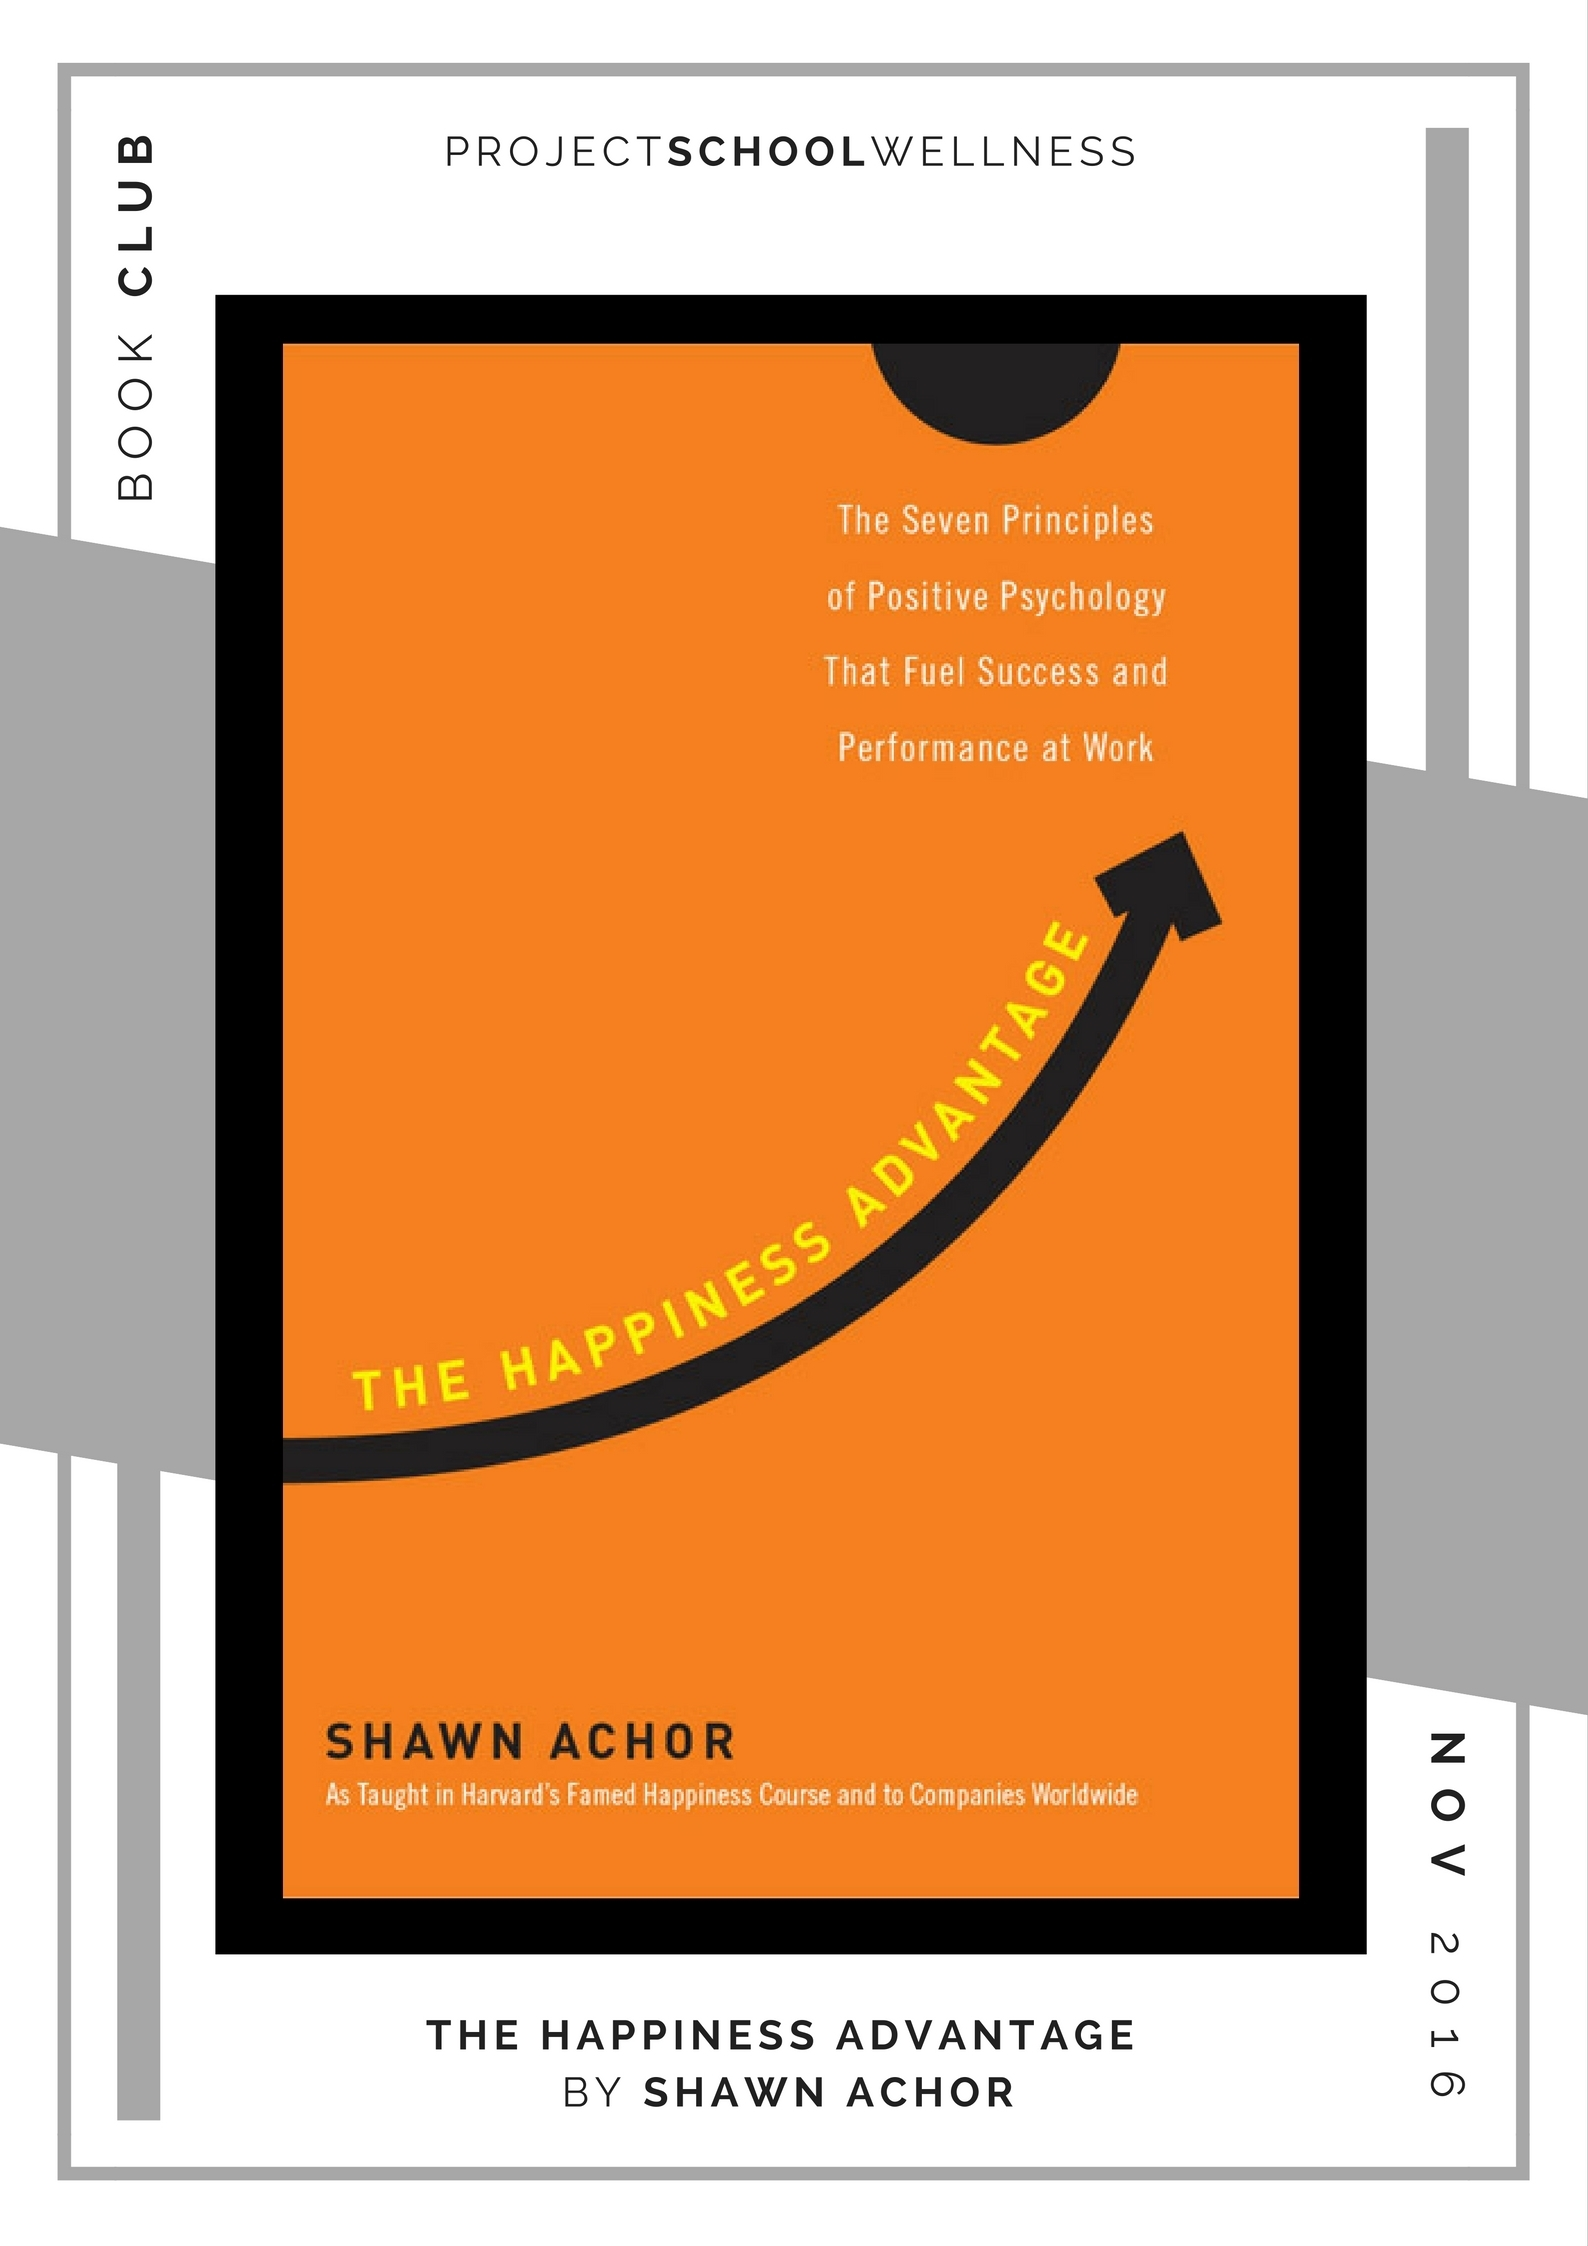 Shawn Achor, The Happiness Advantage - Project School Wellness' Teacher Book Club, must read books for every teacher!